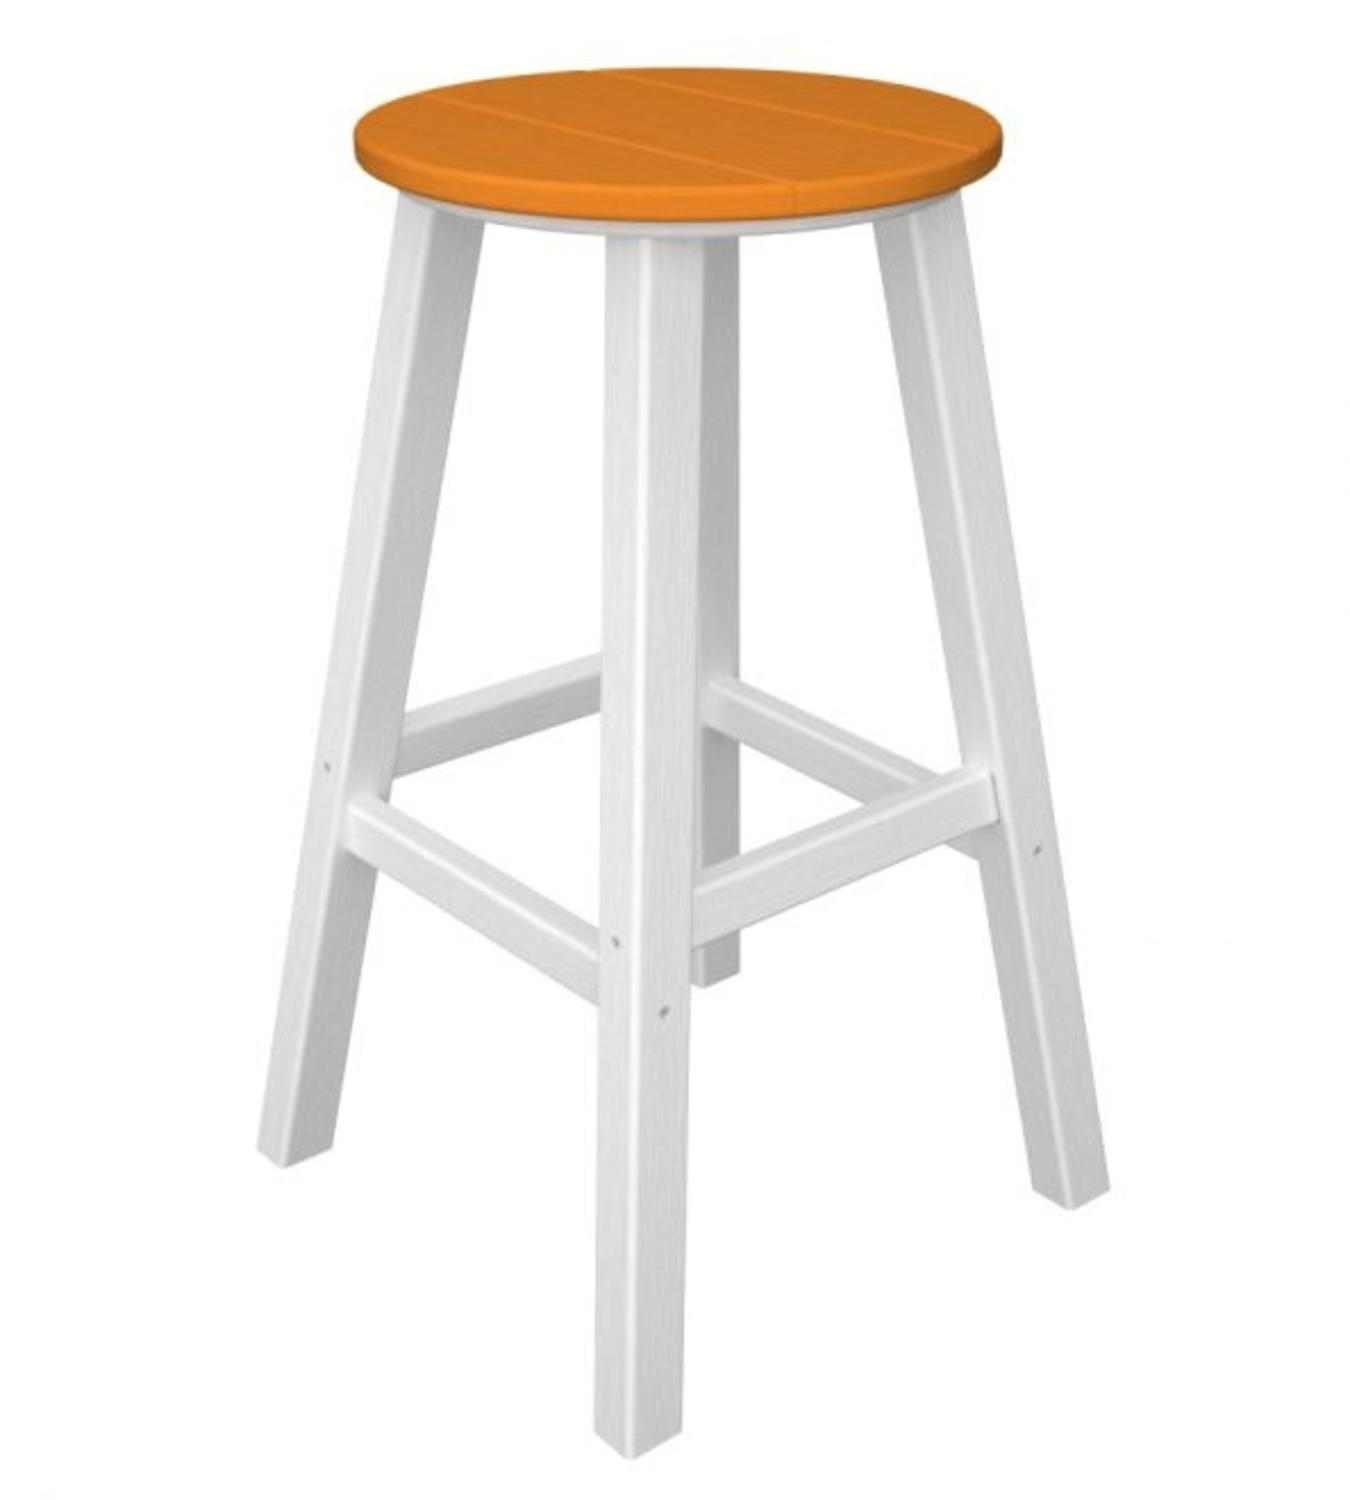 Pack of 2 Recycled Au Courant Outdoor Bar Height Stools White & Orange Tangerine